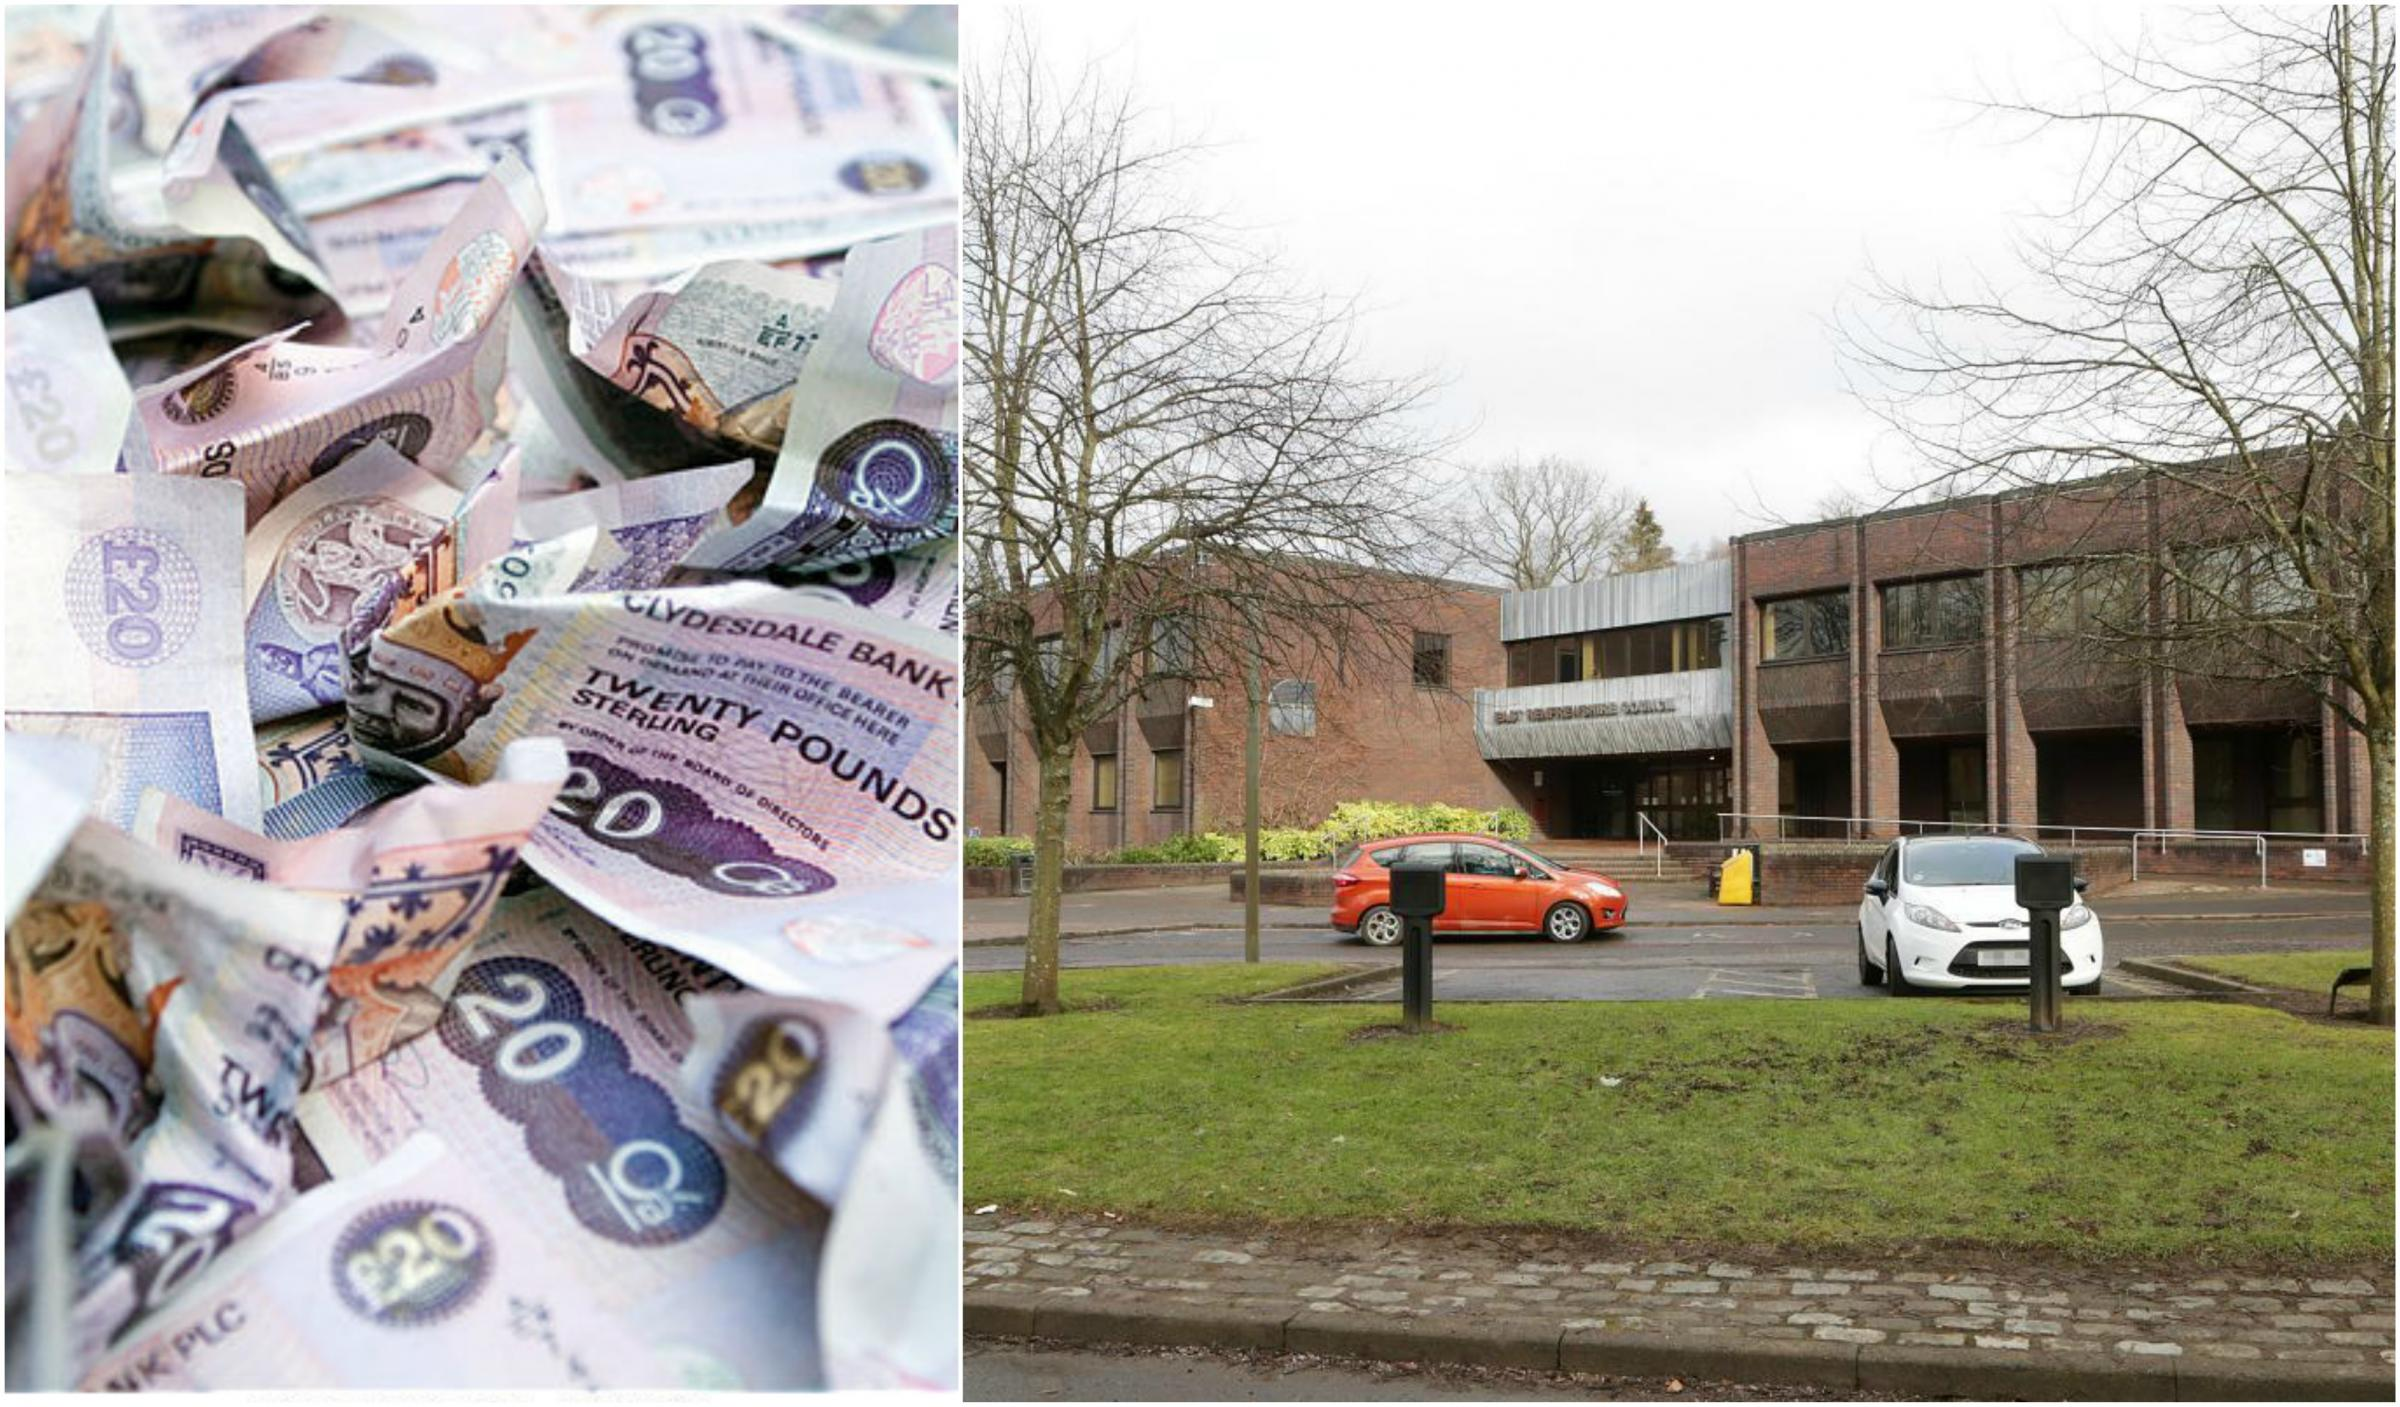 Anger over East Renfrewshire councillors' 'bumper' pay rises